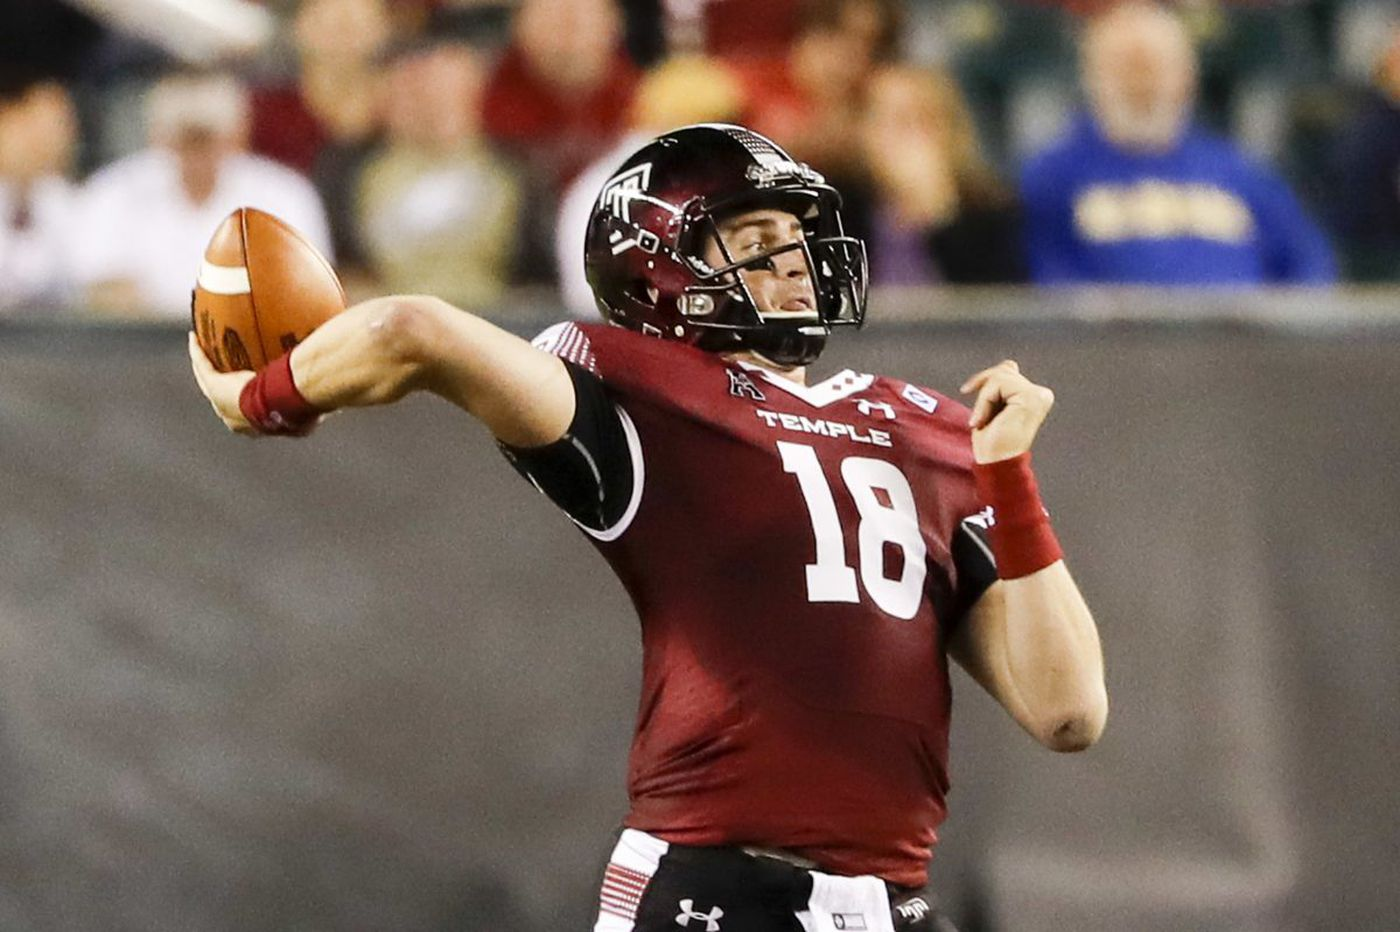 Kickoff times set for six Temple football games